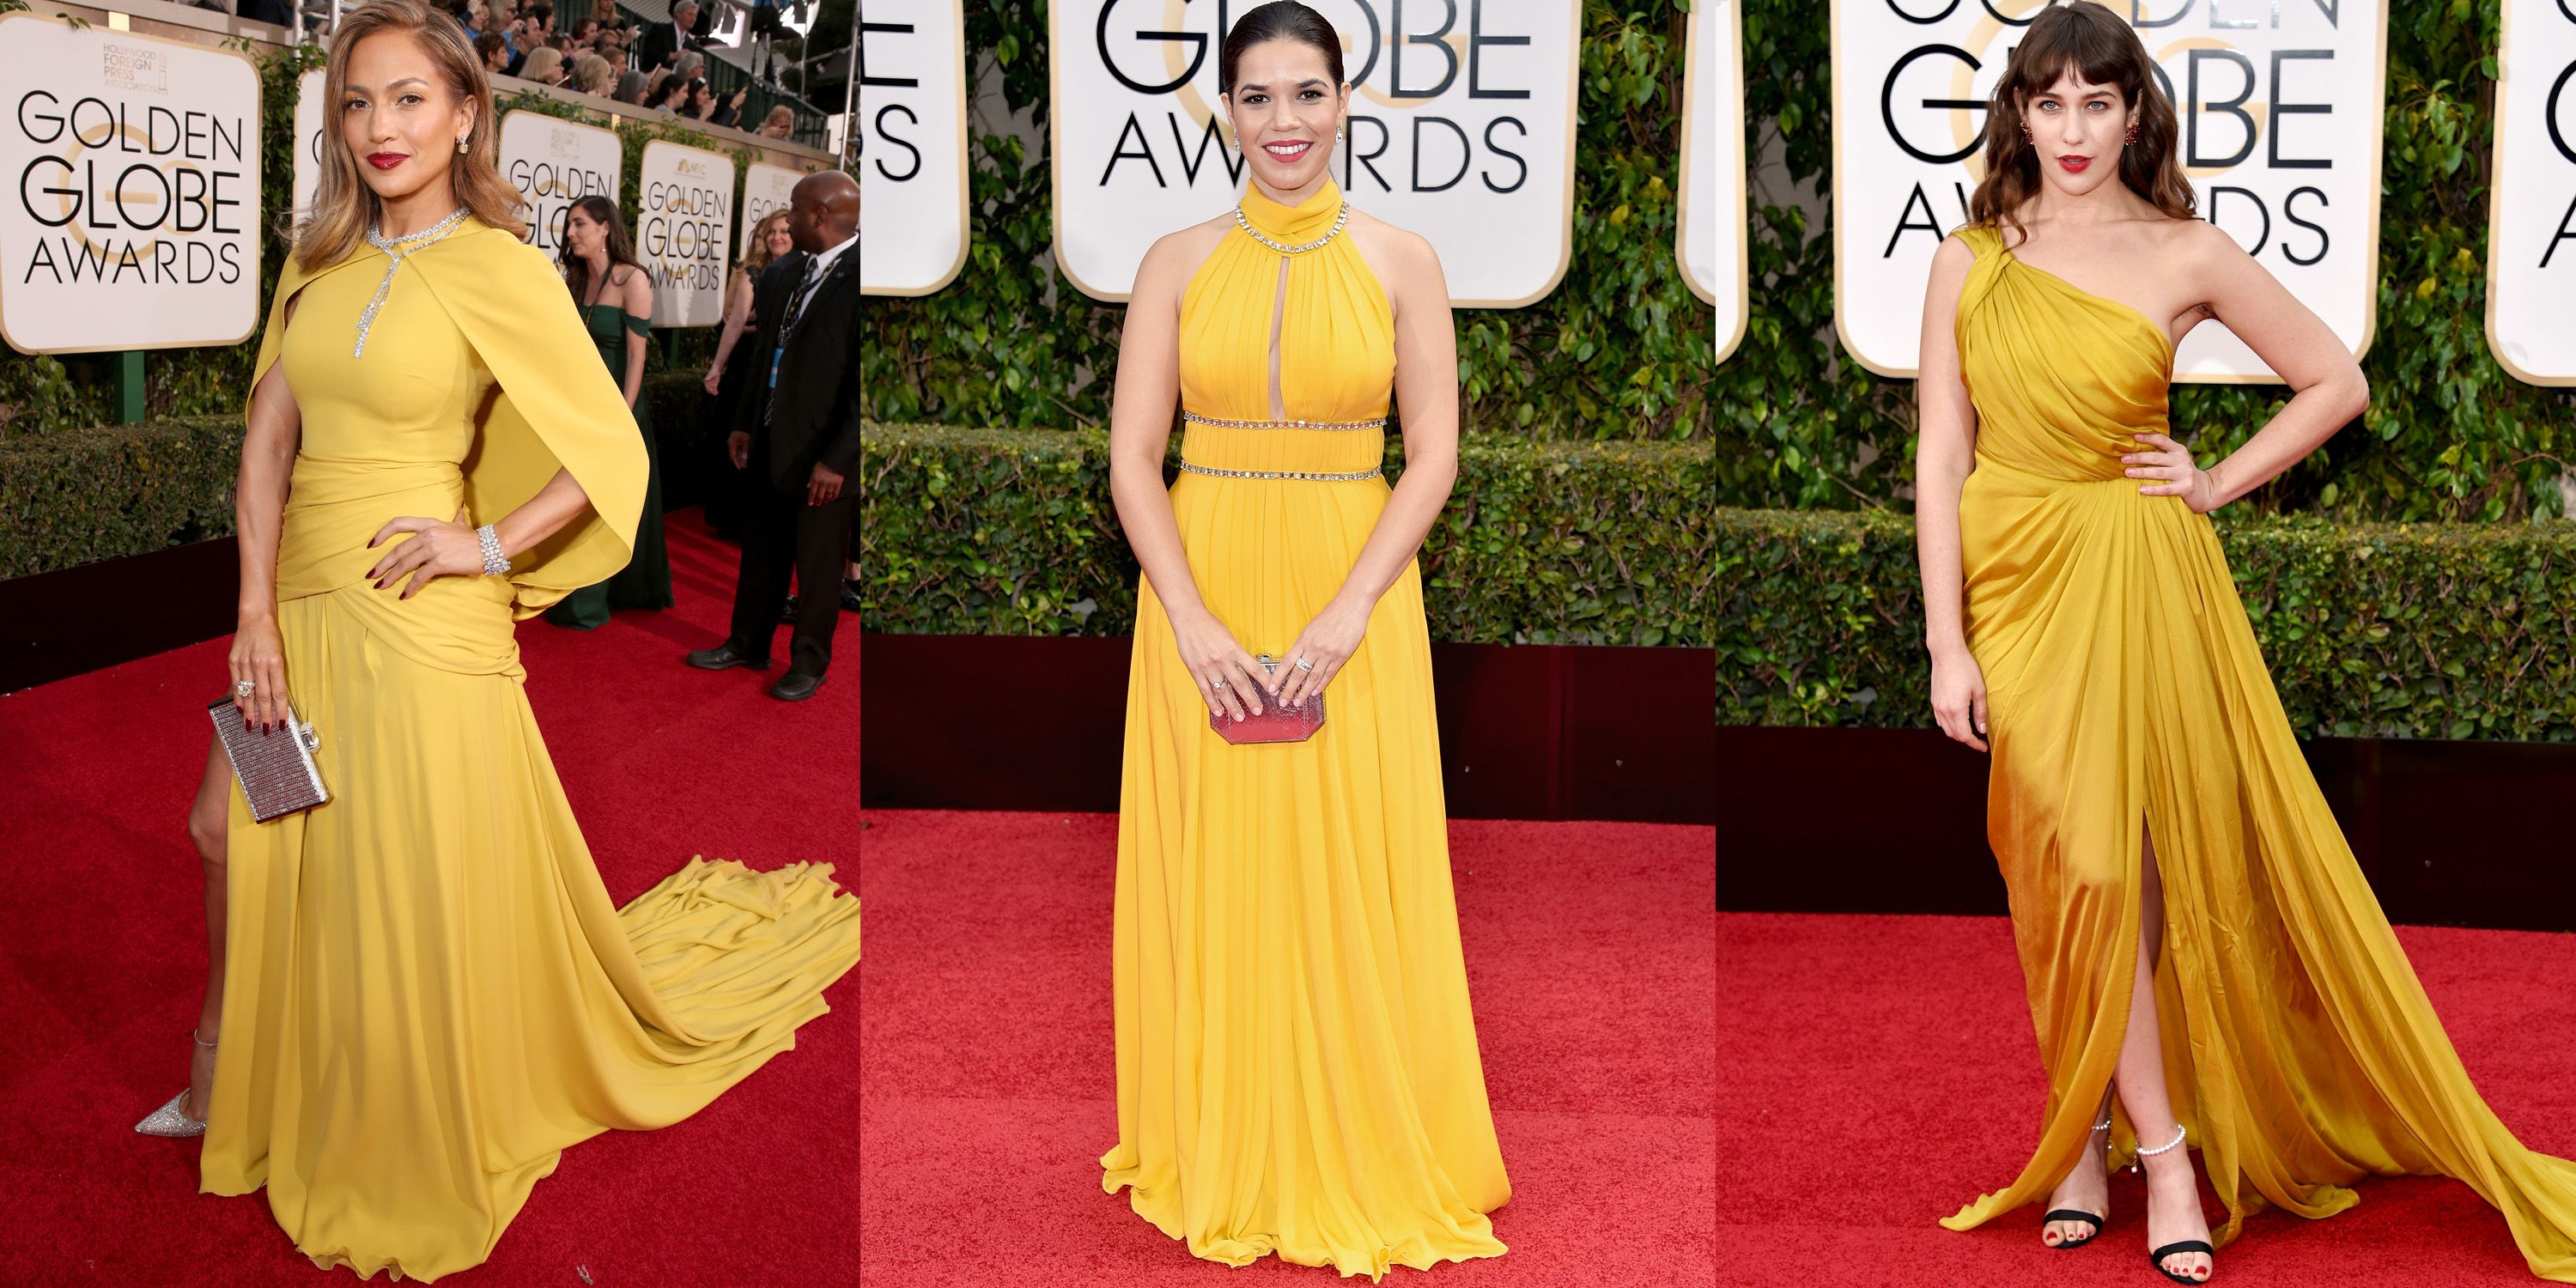 <p>While this controversial color is more likely to wow on olive or darker skin tones, these stars proved that marigold, mustard and ochre work best when paired with a bold red lip.</p><p><em>Pictured: Jennifer Lopez in Giambattista Valli Haute Couture, America Ferrera in Jenny Packham,  Lola Kirke in Monique Lhuillier</em></p>